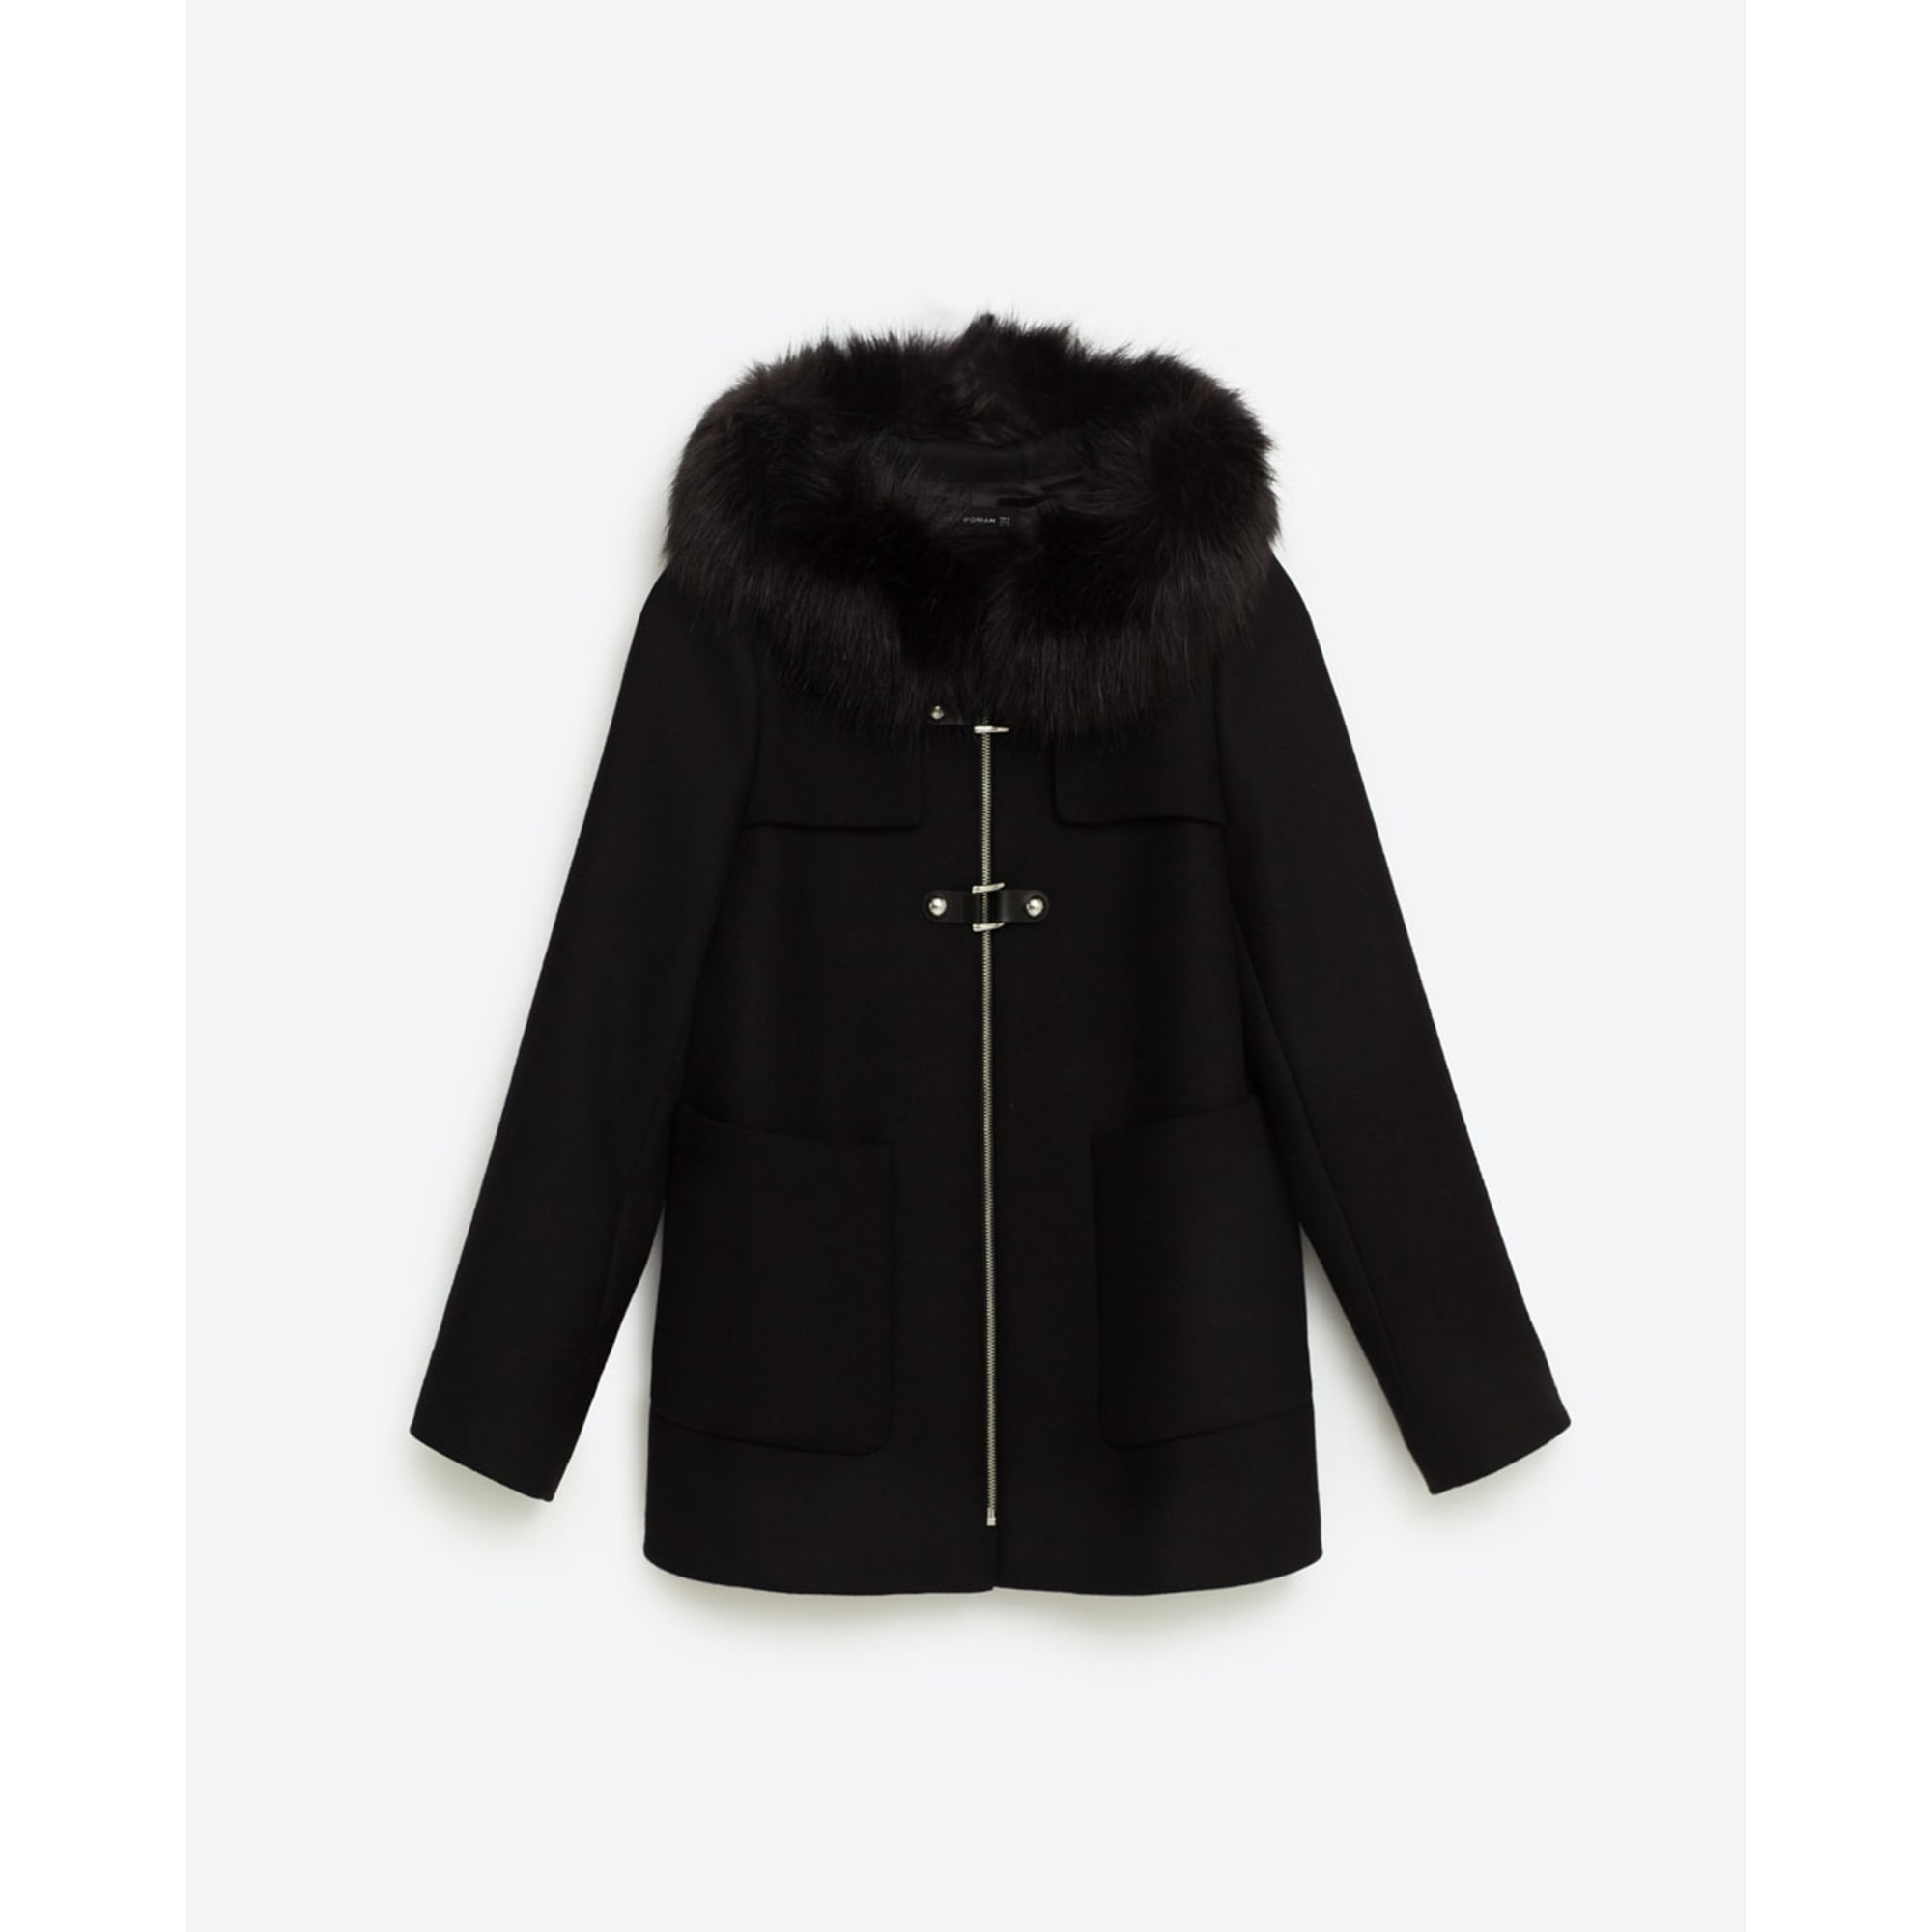 Zara 40 6860805 Coat Black T3 Vendu Dutertre72 Par l 4Pwdwq